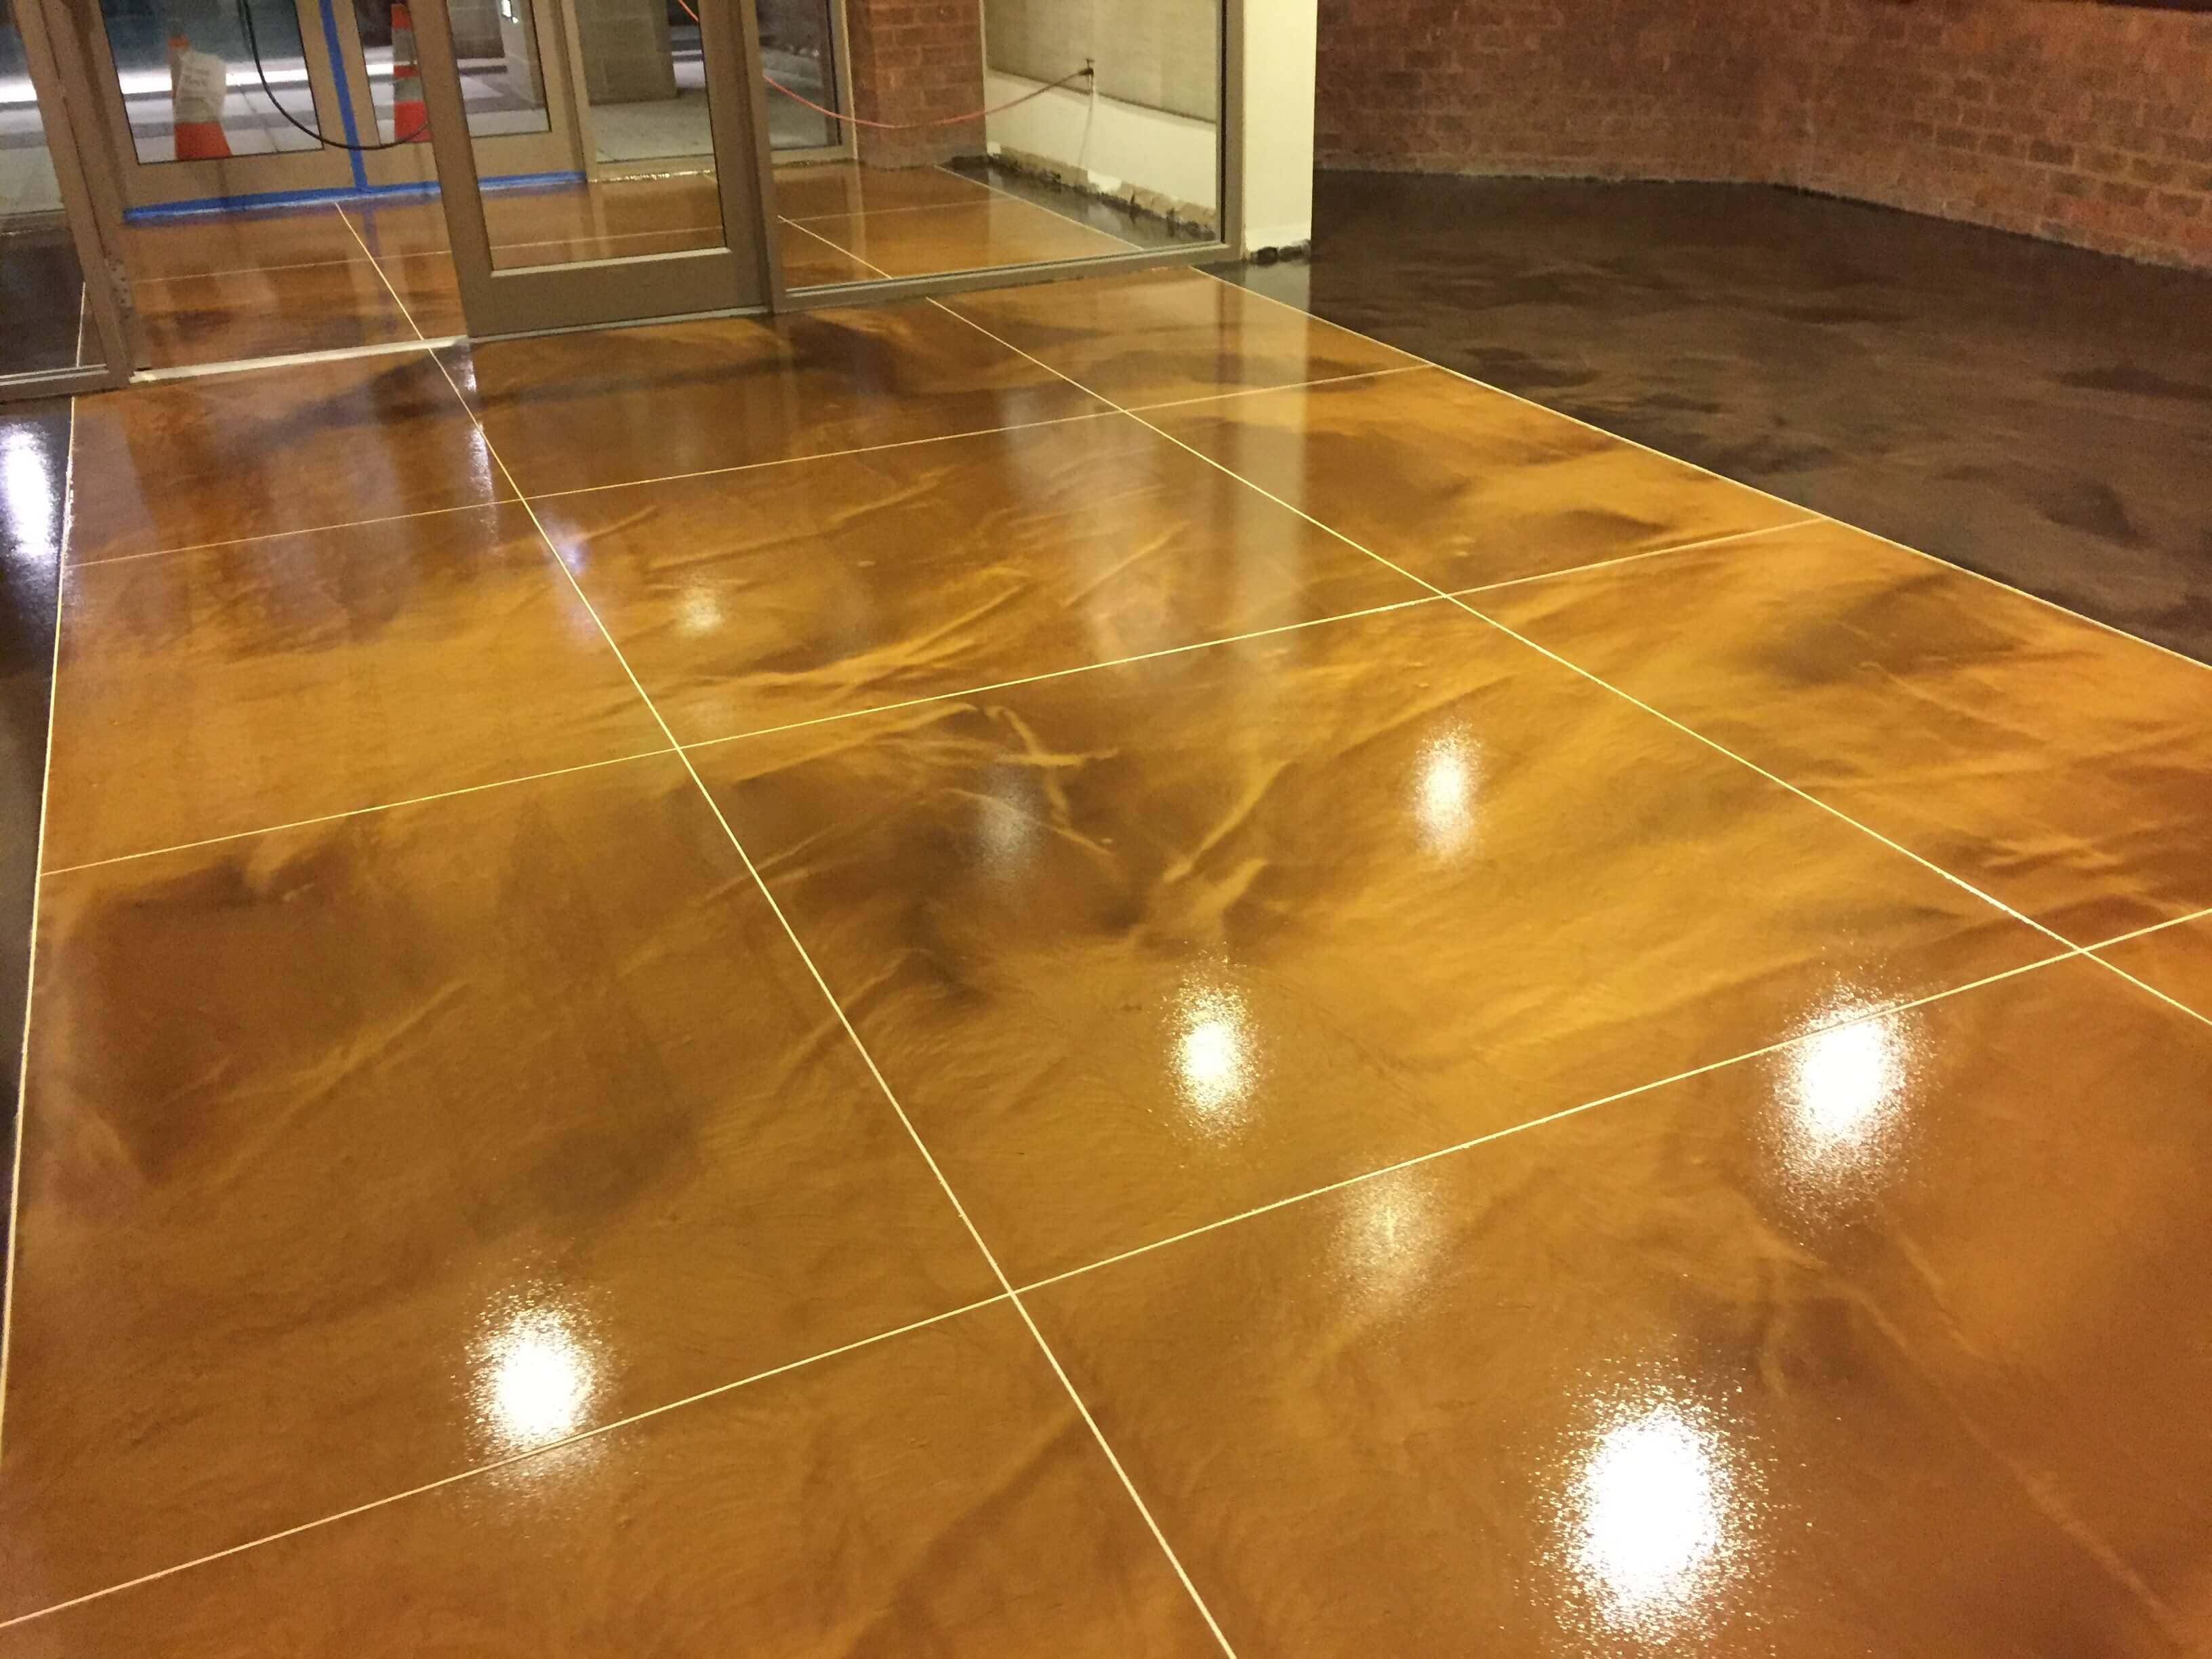 Epoxy Garage Floor Expansion Joints Maryland Concrete Design Epoxy Floor Coatings